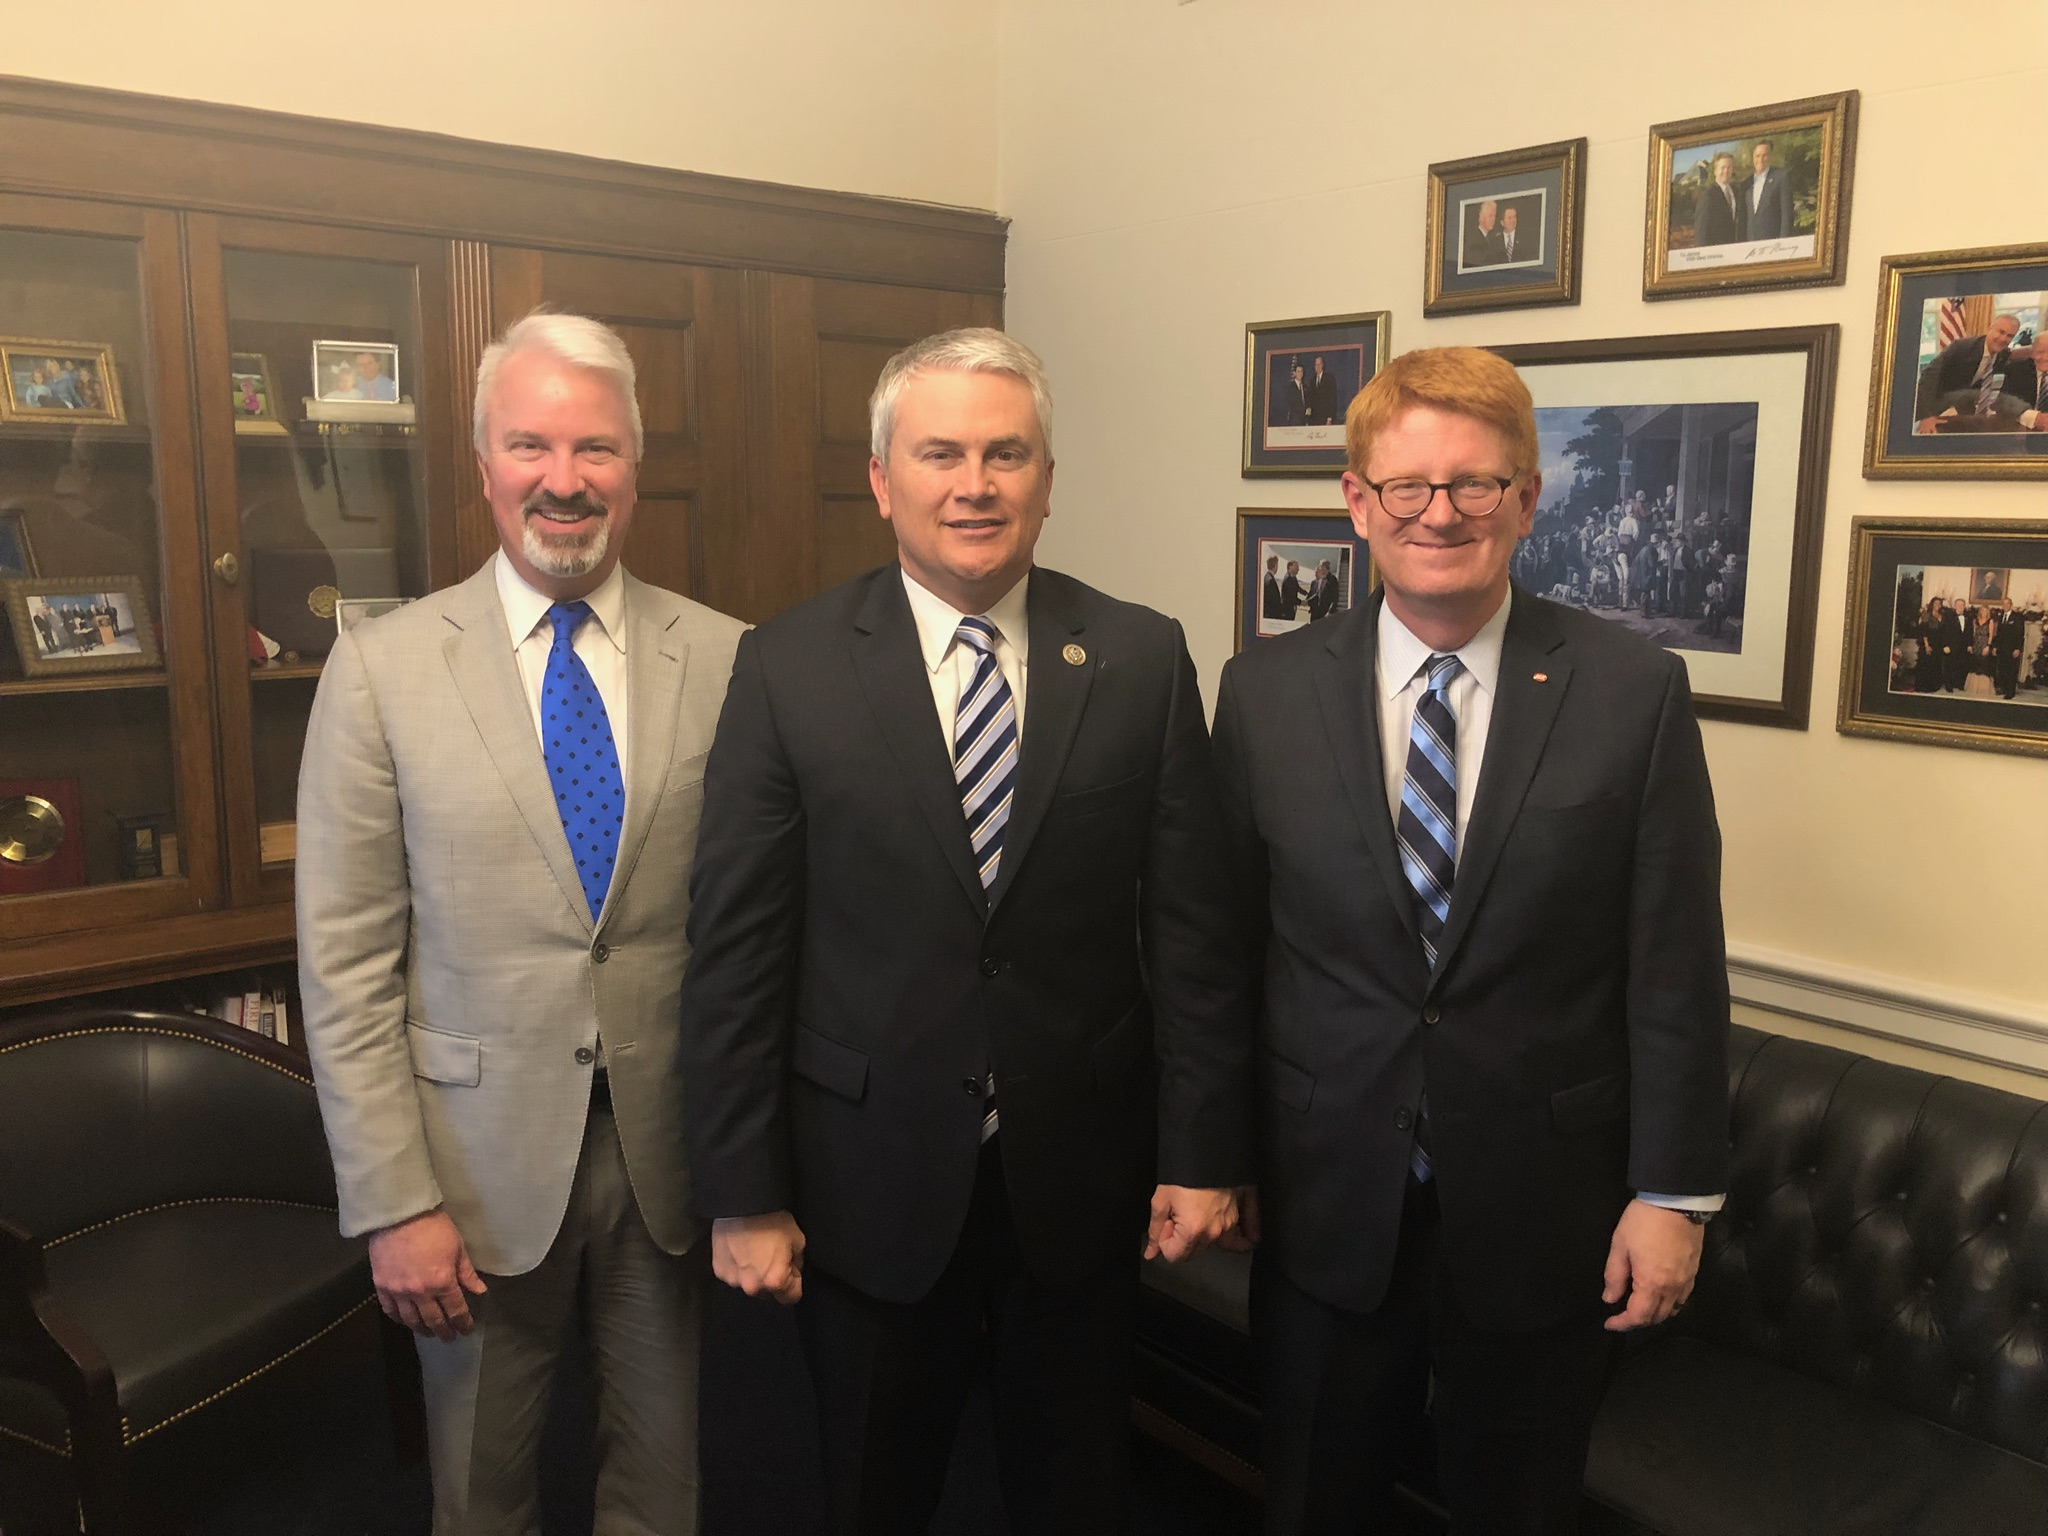 Laurel Grocery Company's Winston Griffin (left) and Ross (right) meet with Congressman Comer (middle).